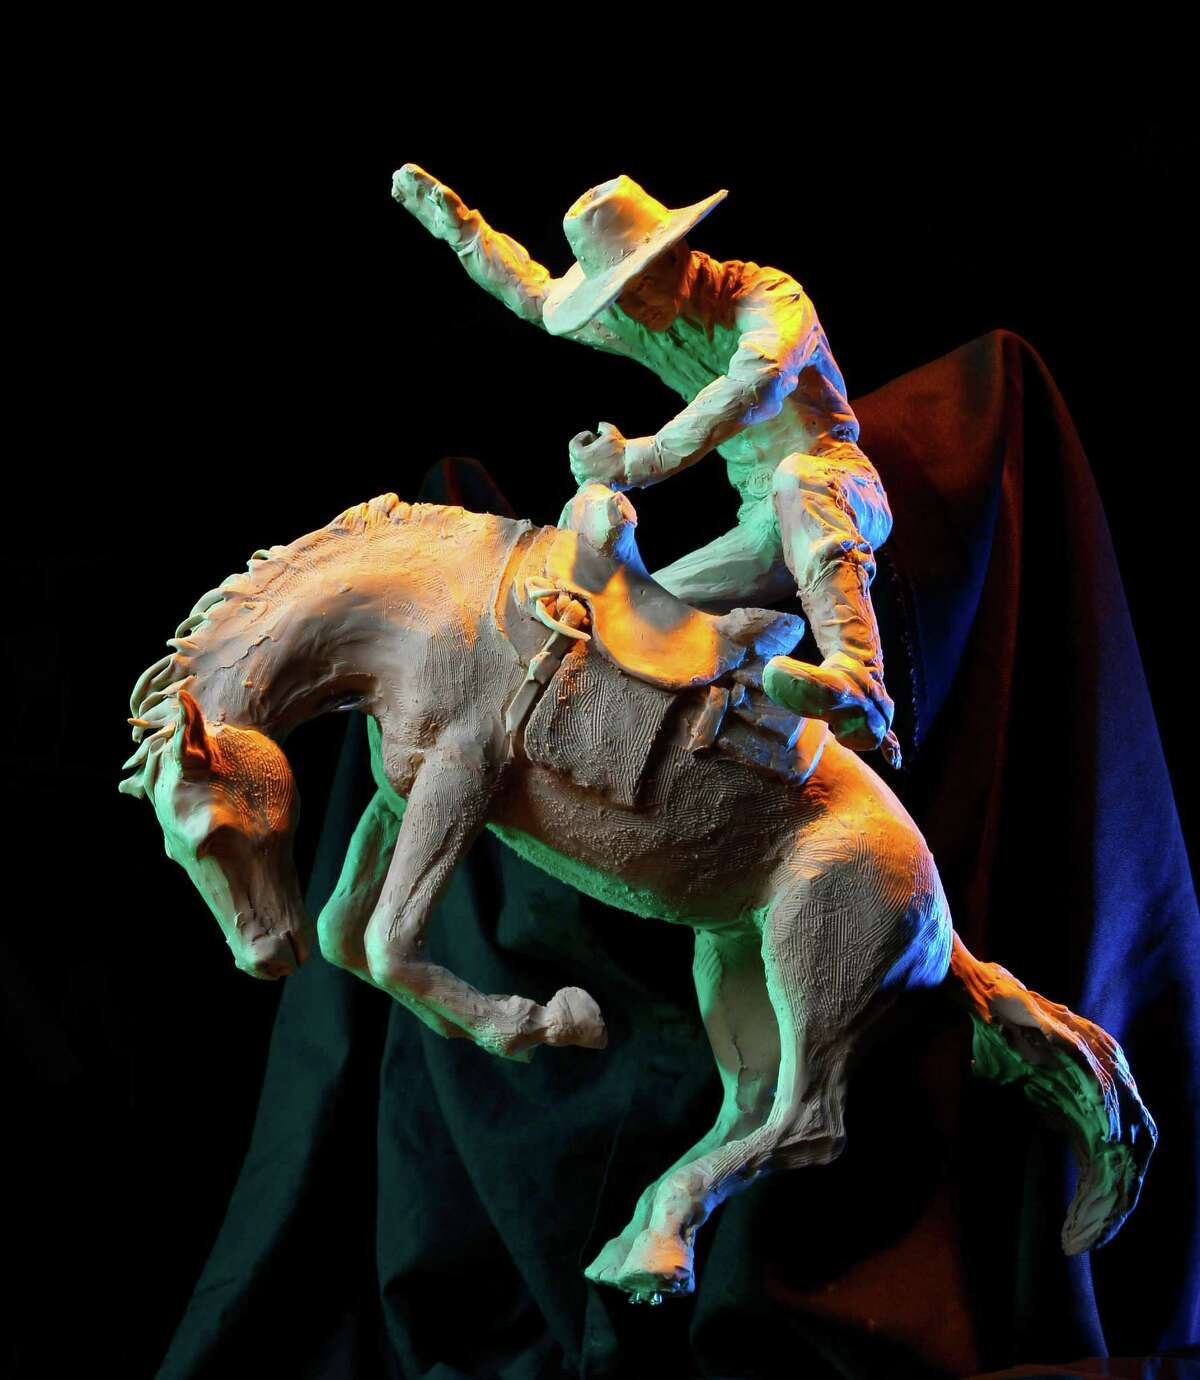 The vaquero, the new mascot for the University of Texas Rio Grande Valley, is also an American icon.